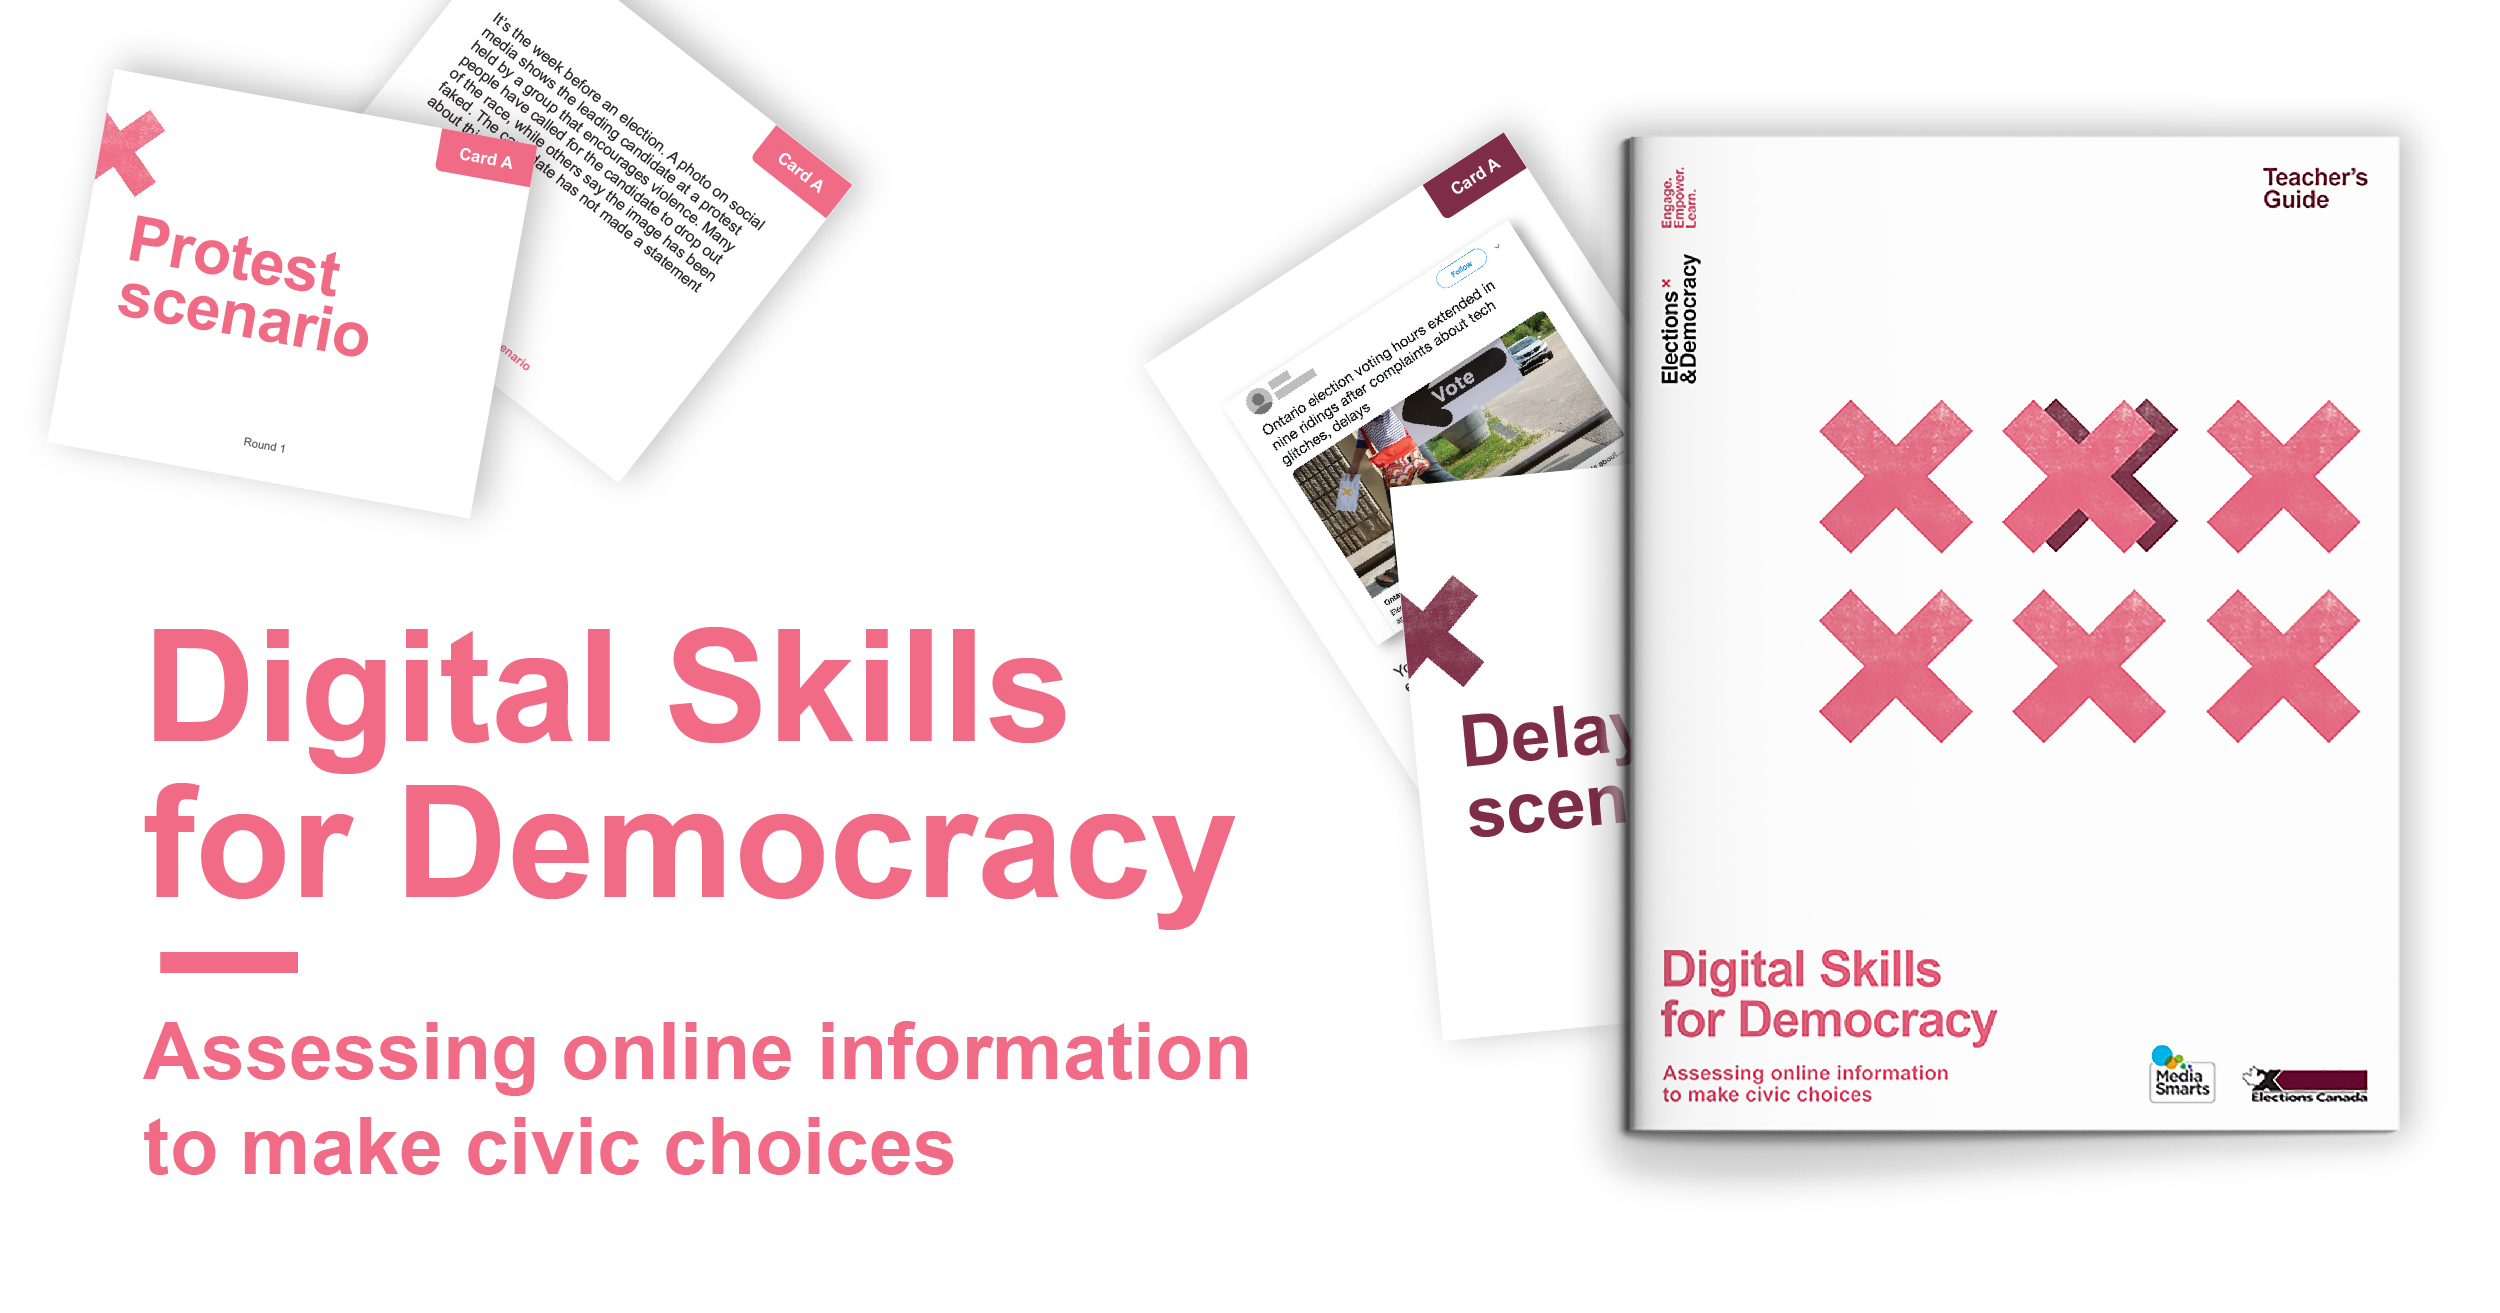 Digital Skills for Democracy - Assessing online information to make civic choices